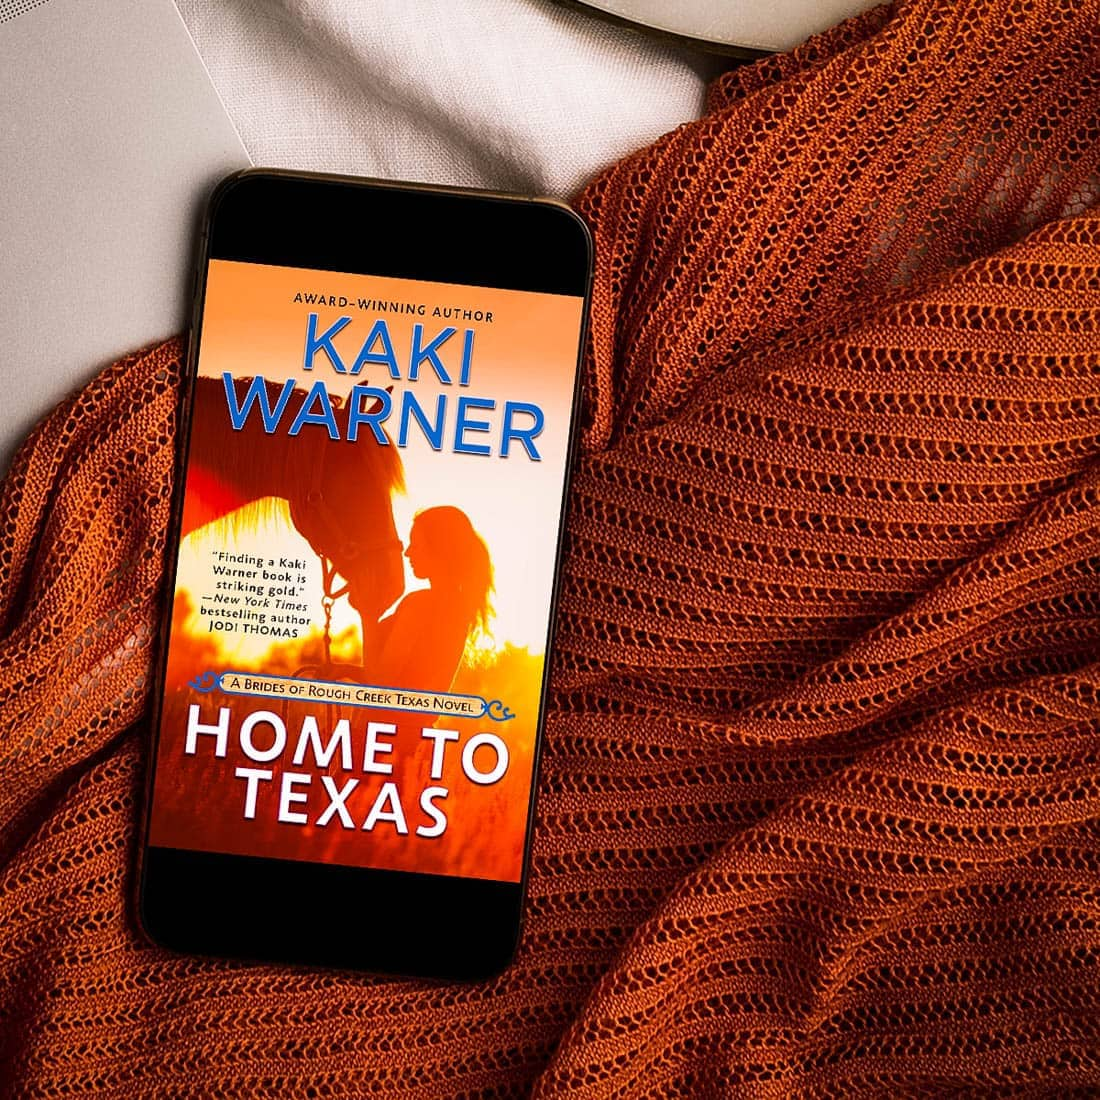 Enjoy this excerpt from Home to Texas by Kaki Warner, a suspenseful western romance about two ex-soldiers who get a fresh start and a second chance at love!